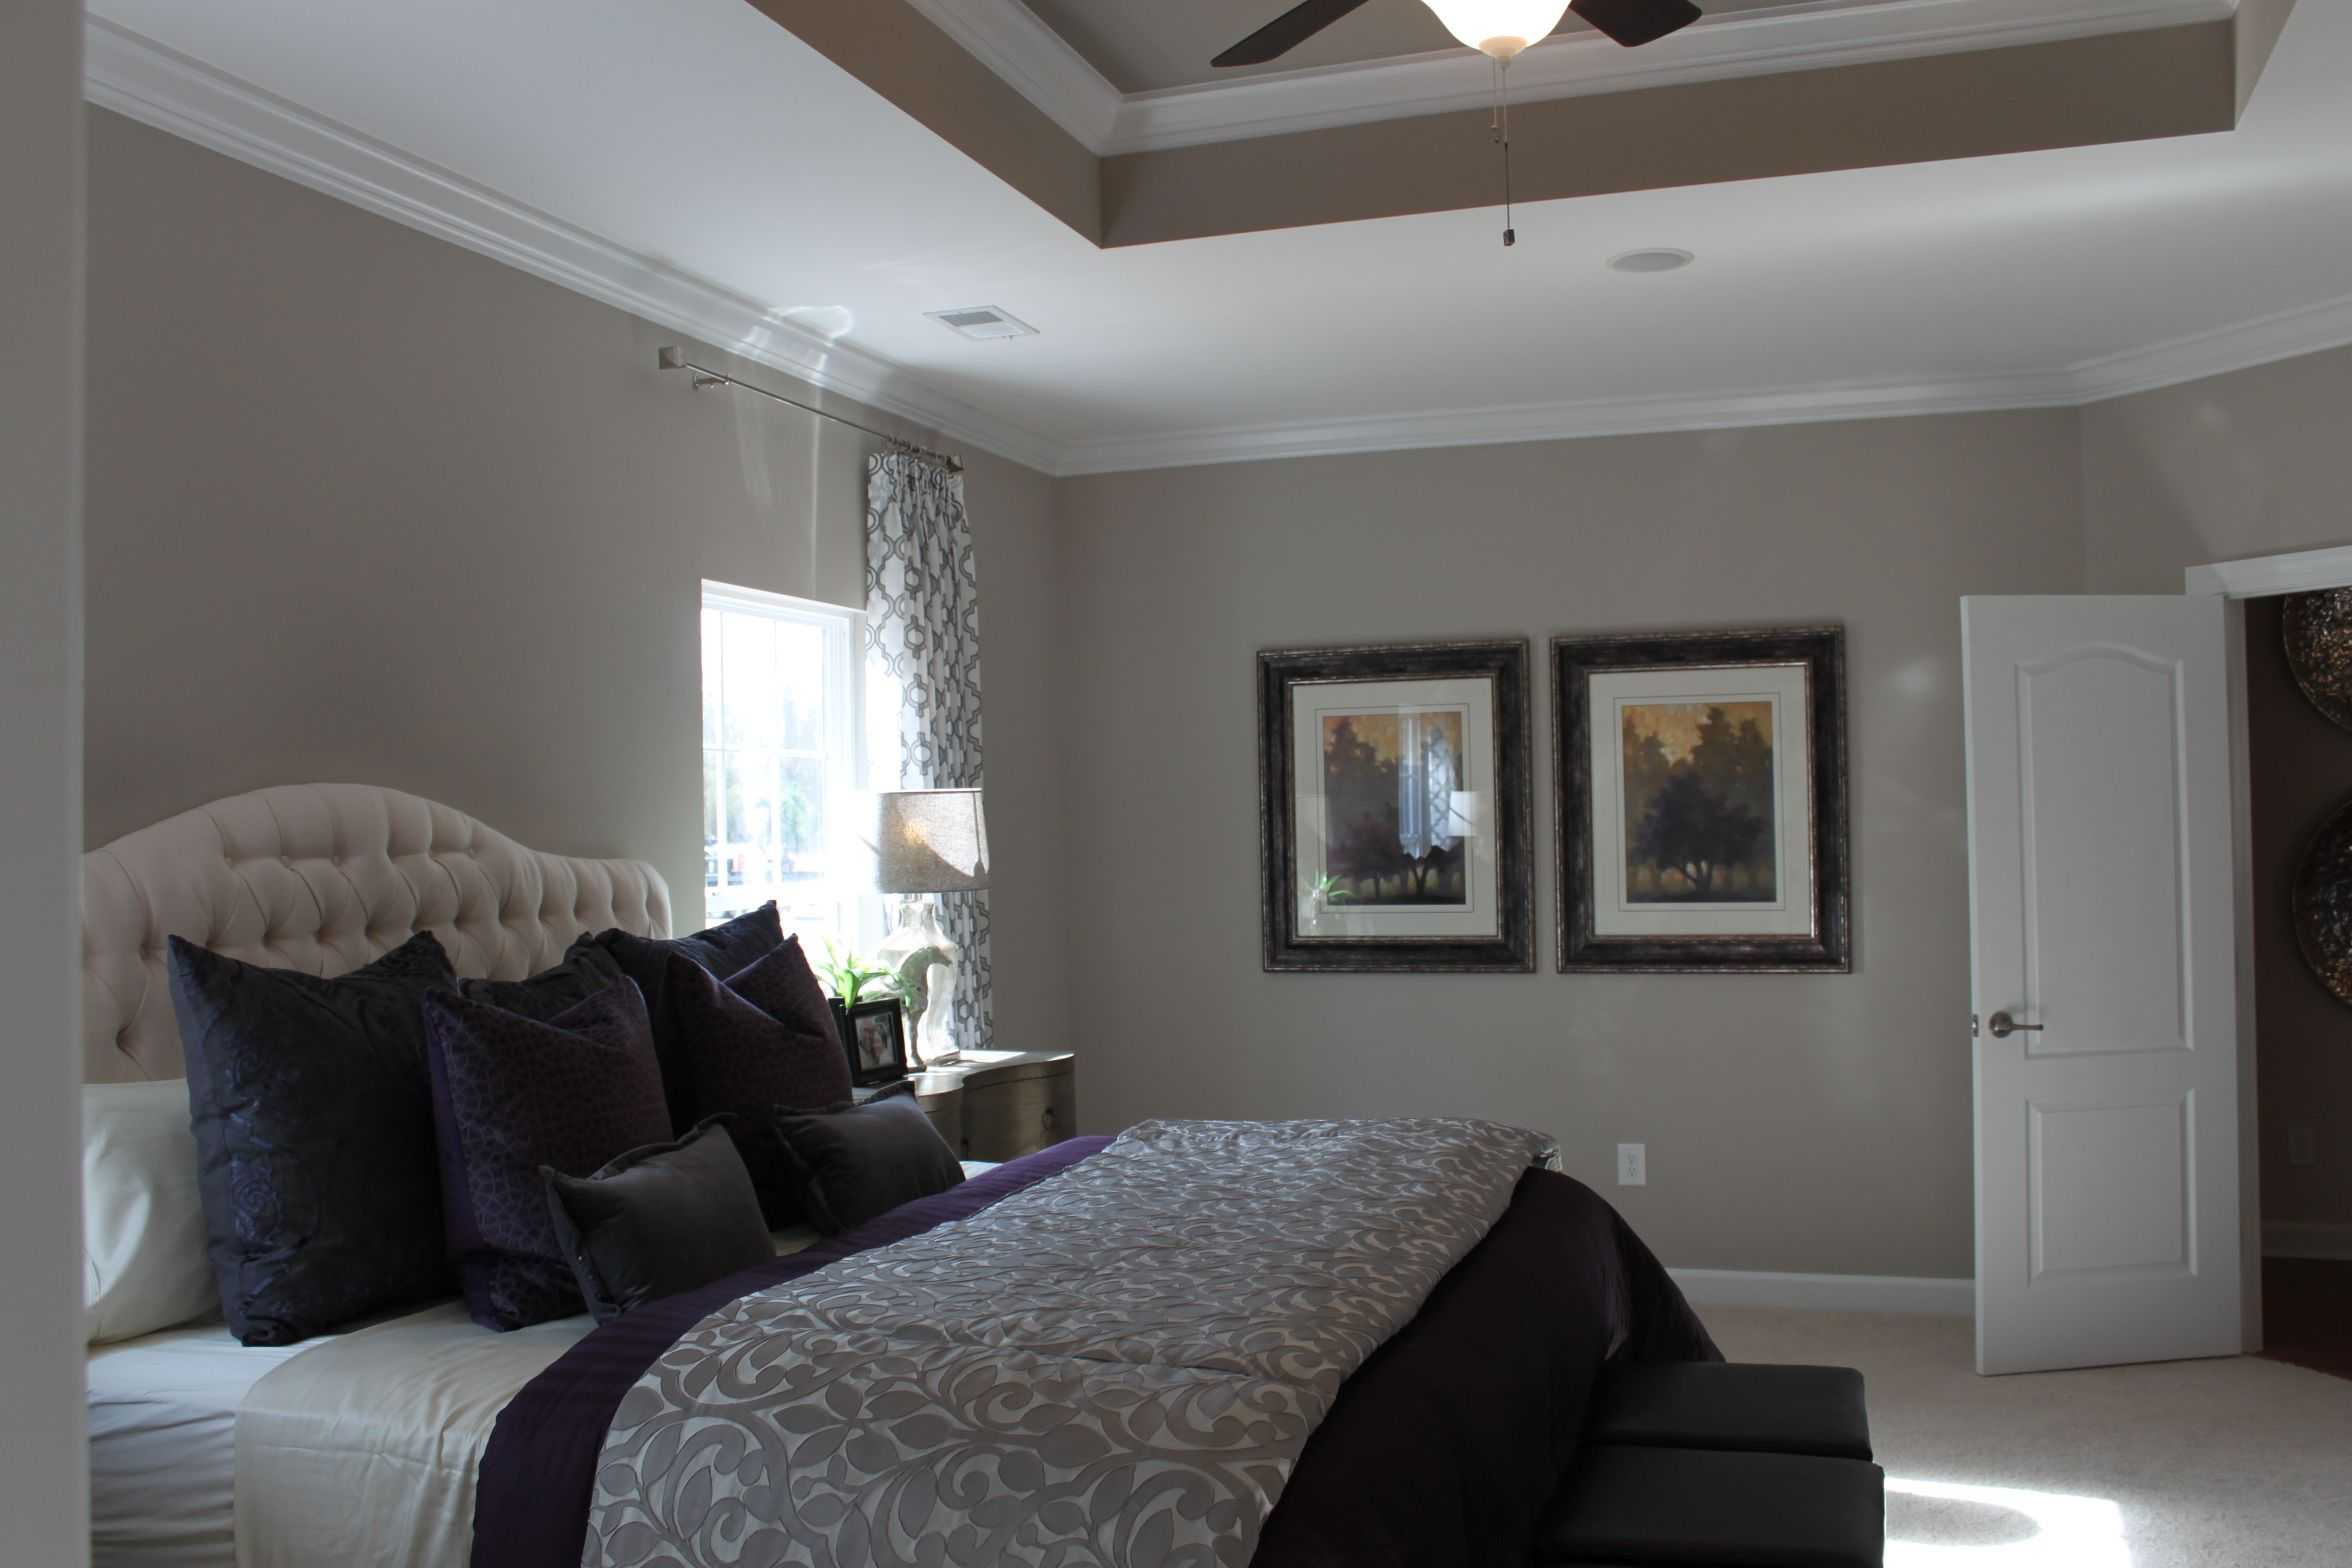 Huge 15 X 19 Master Bedroom With Tray Ceiling Magnolia Model Home At Brookefield Estates